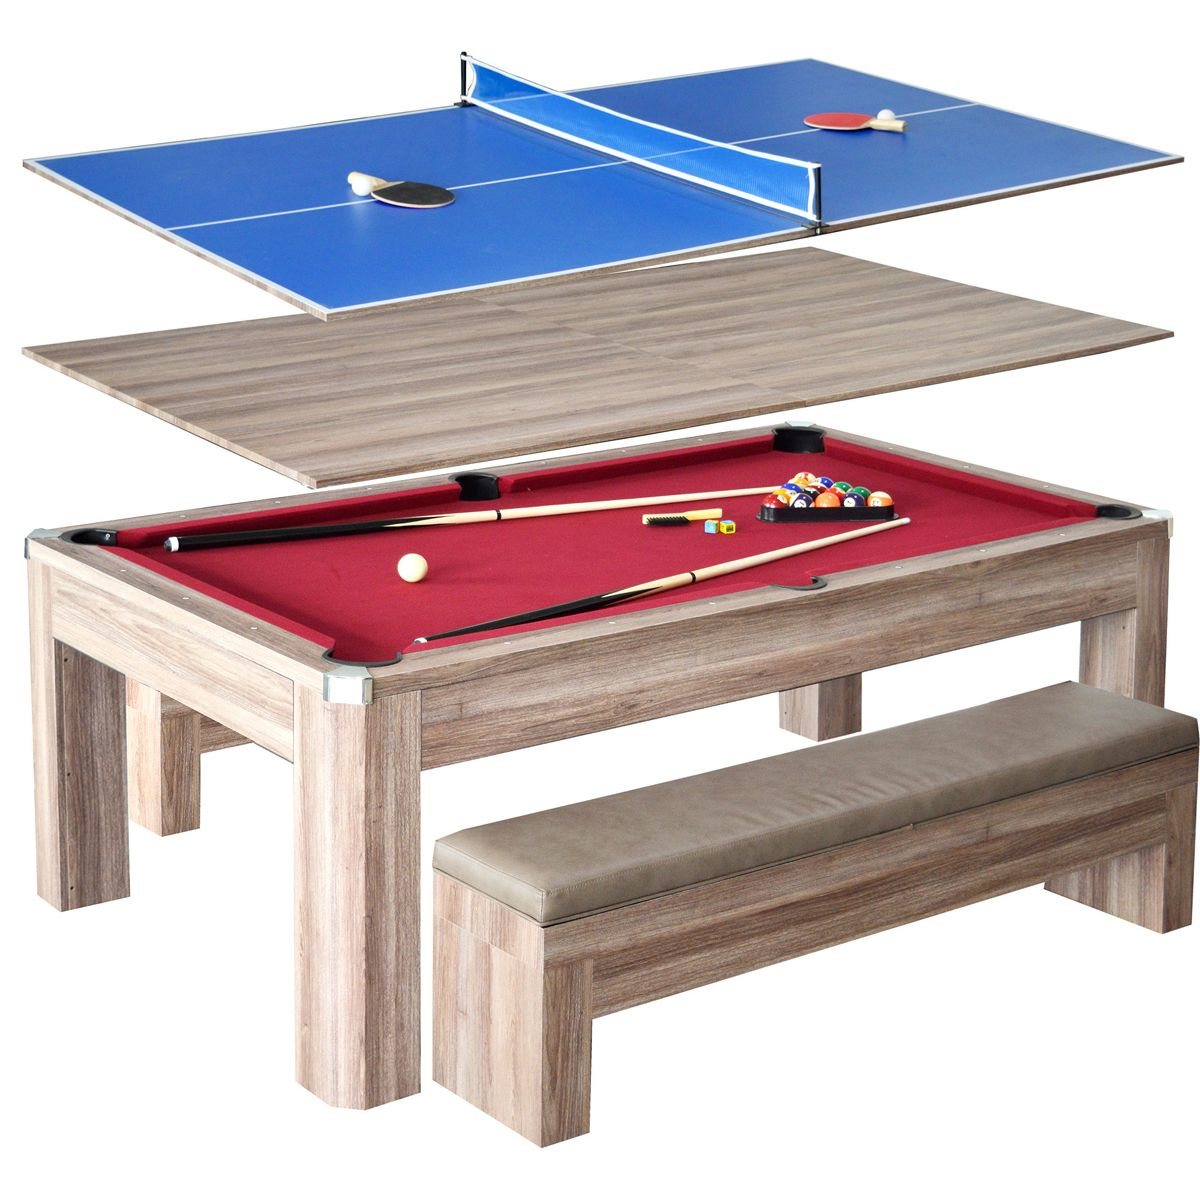 Newport 7 Ft Pool Table Combo Set W Benches Pool Table Dining Table Pool Table Room Pool Table Dining table pool table combinations